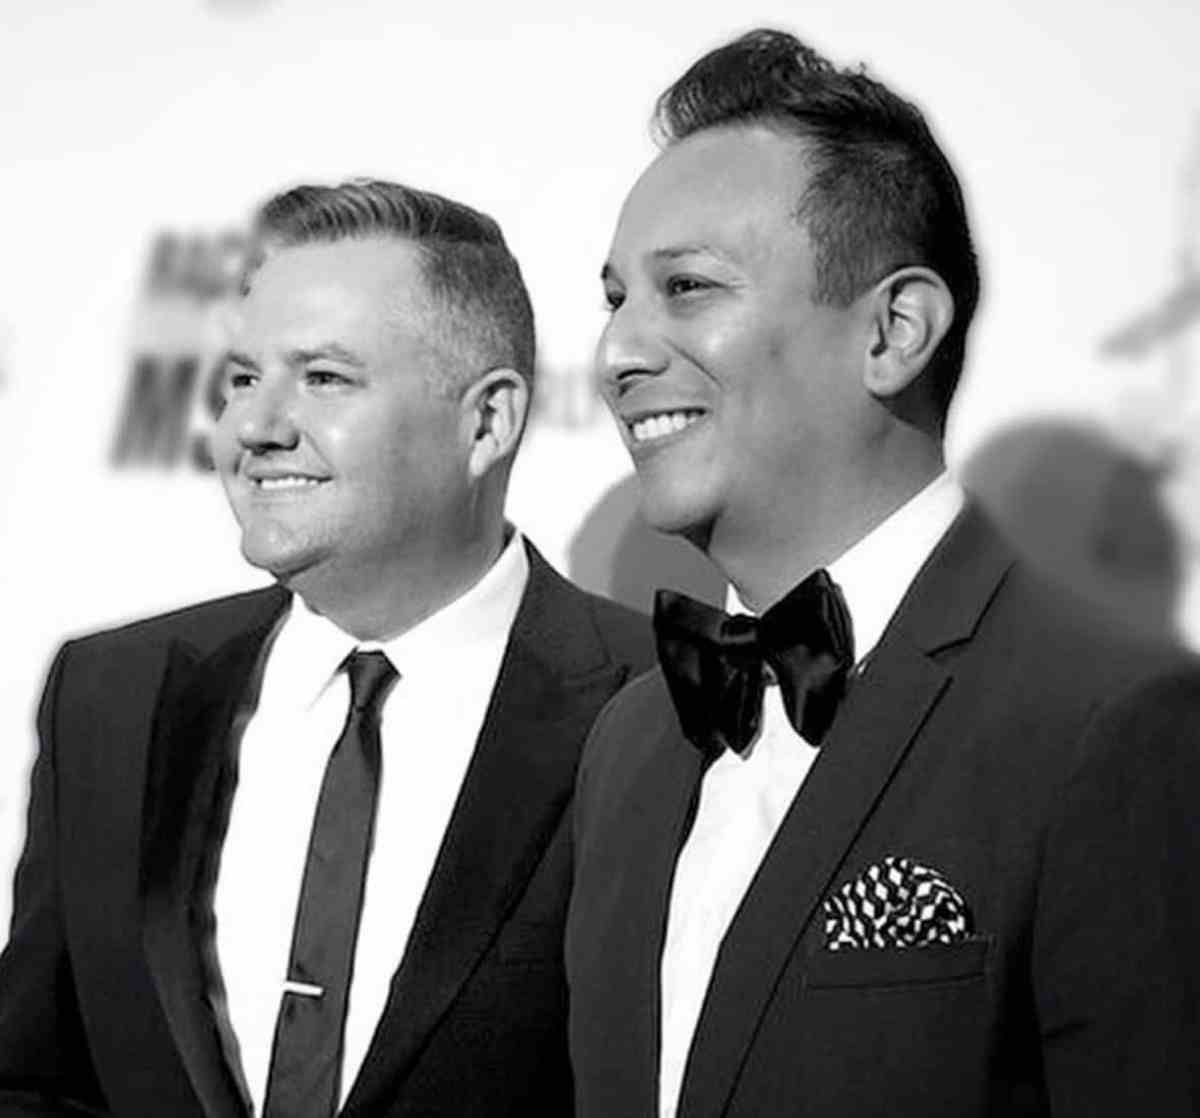 Ross Mathews split Instagram